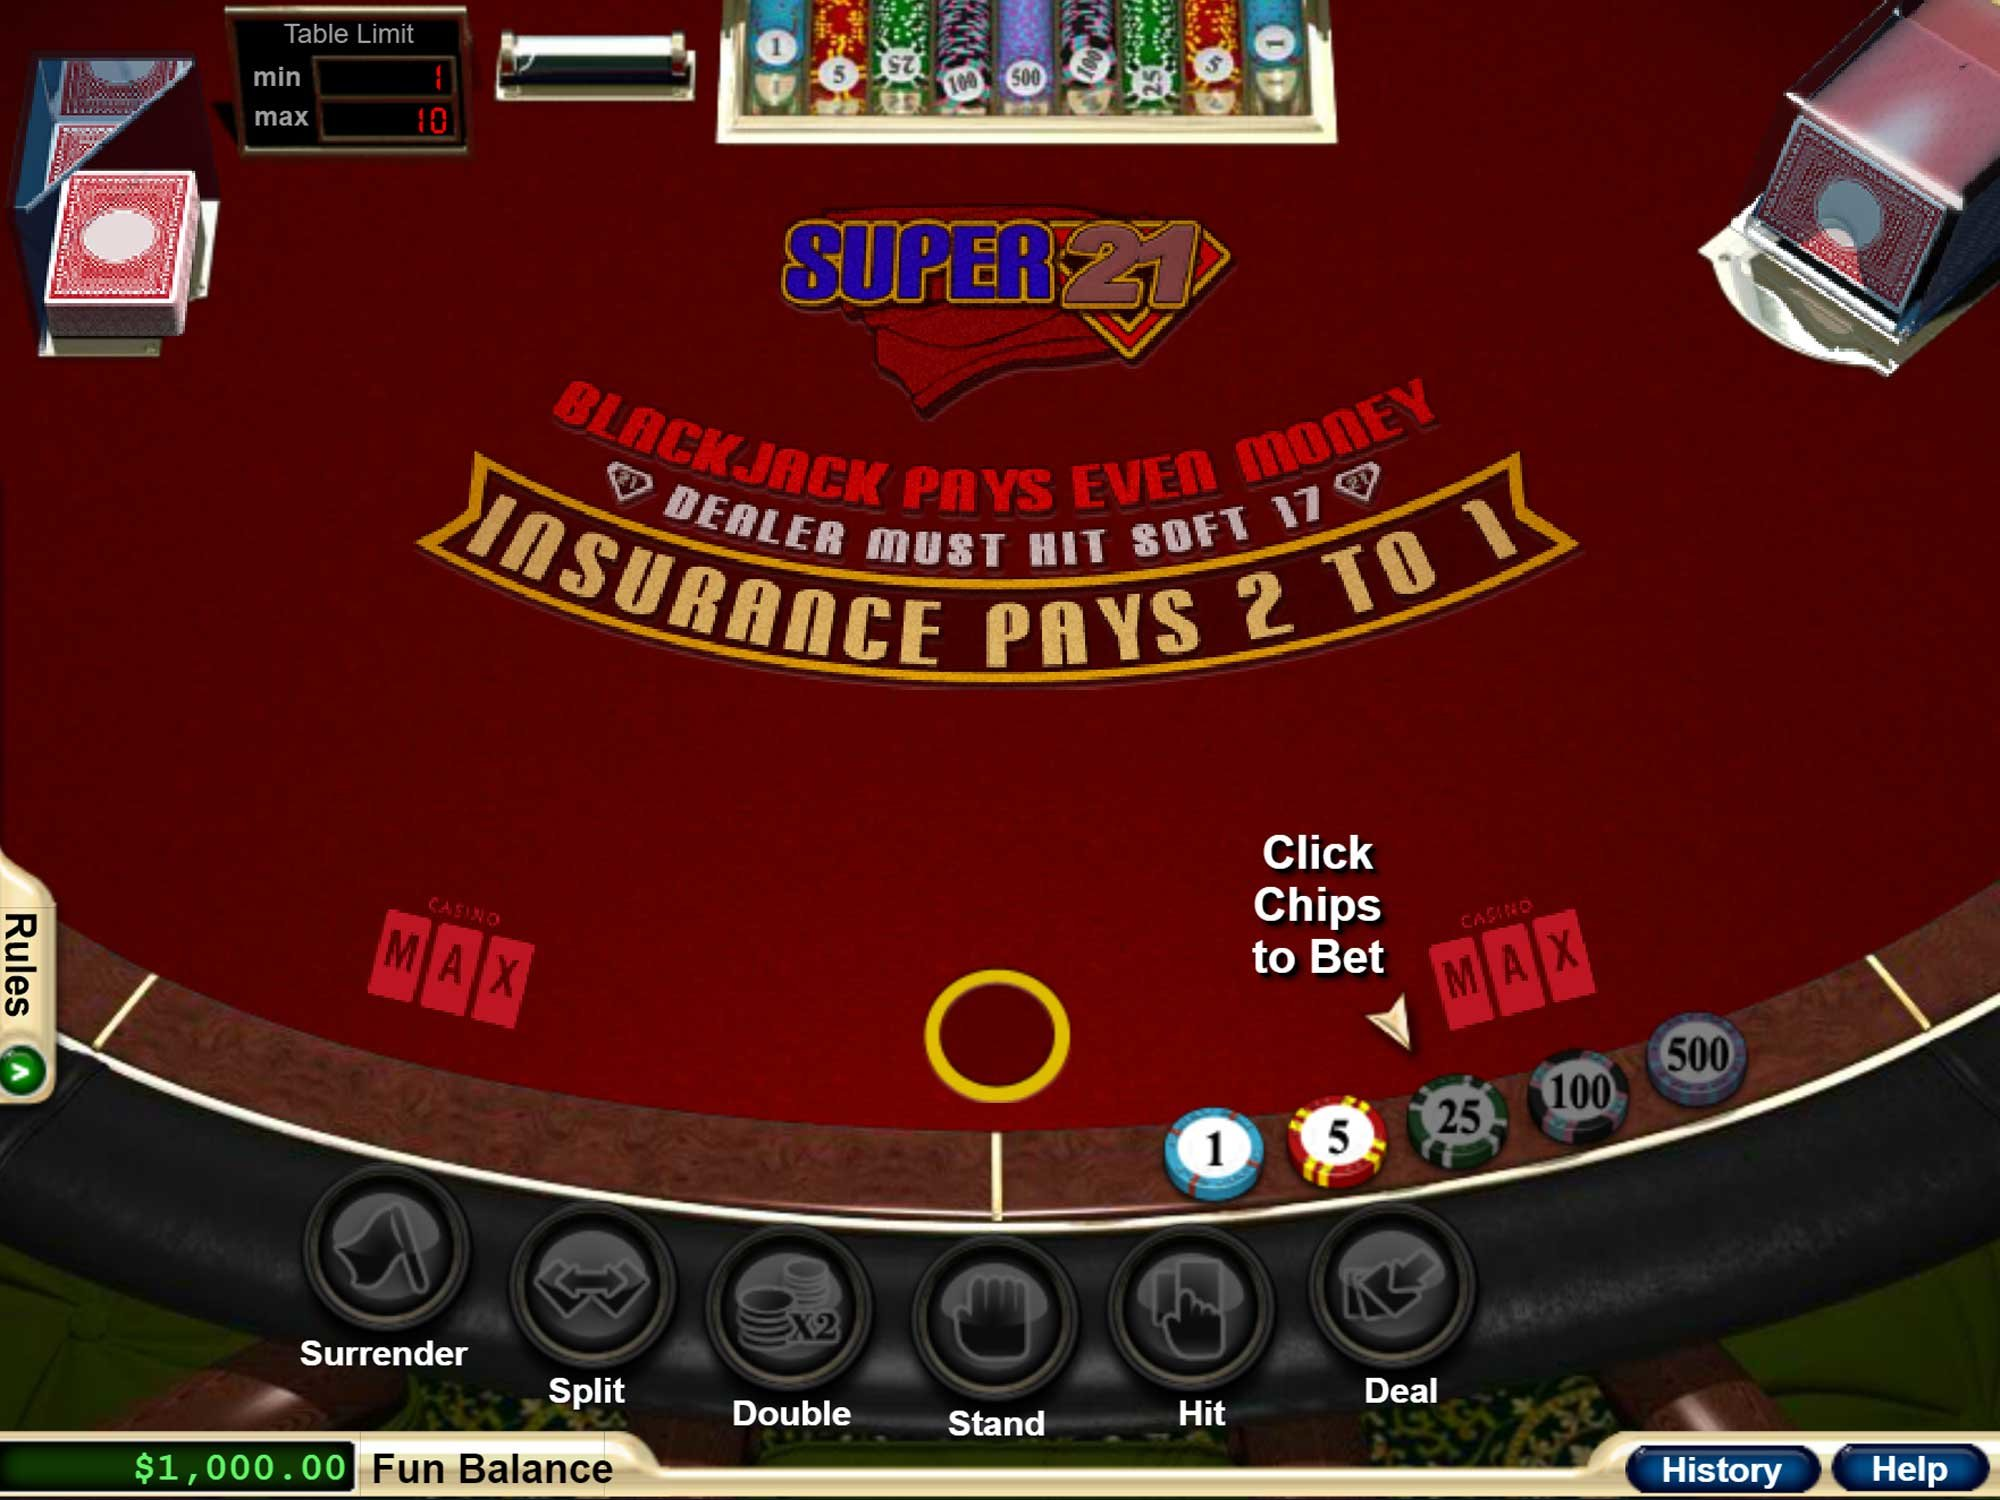 Advantages of double deck blackjack